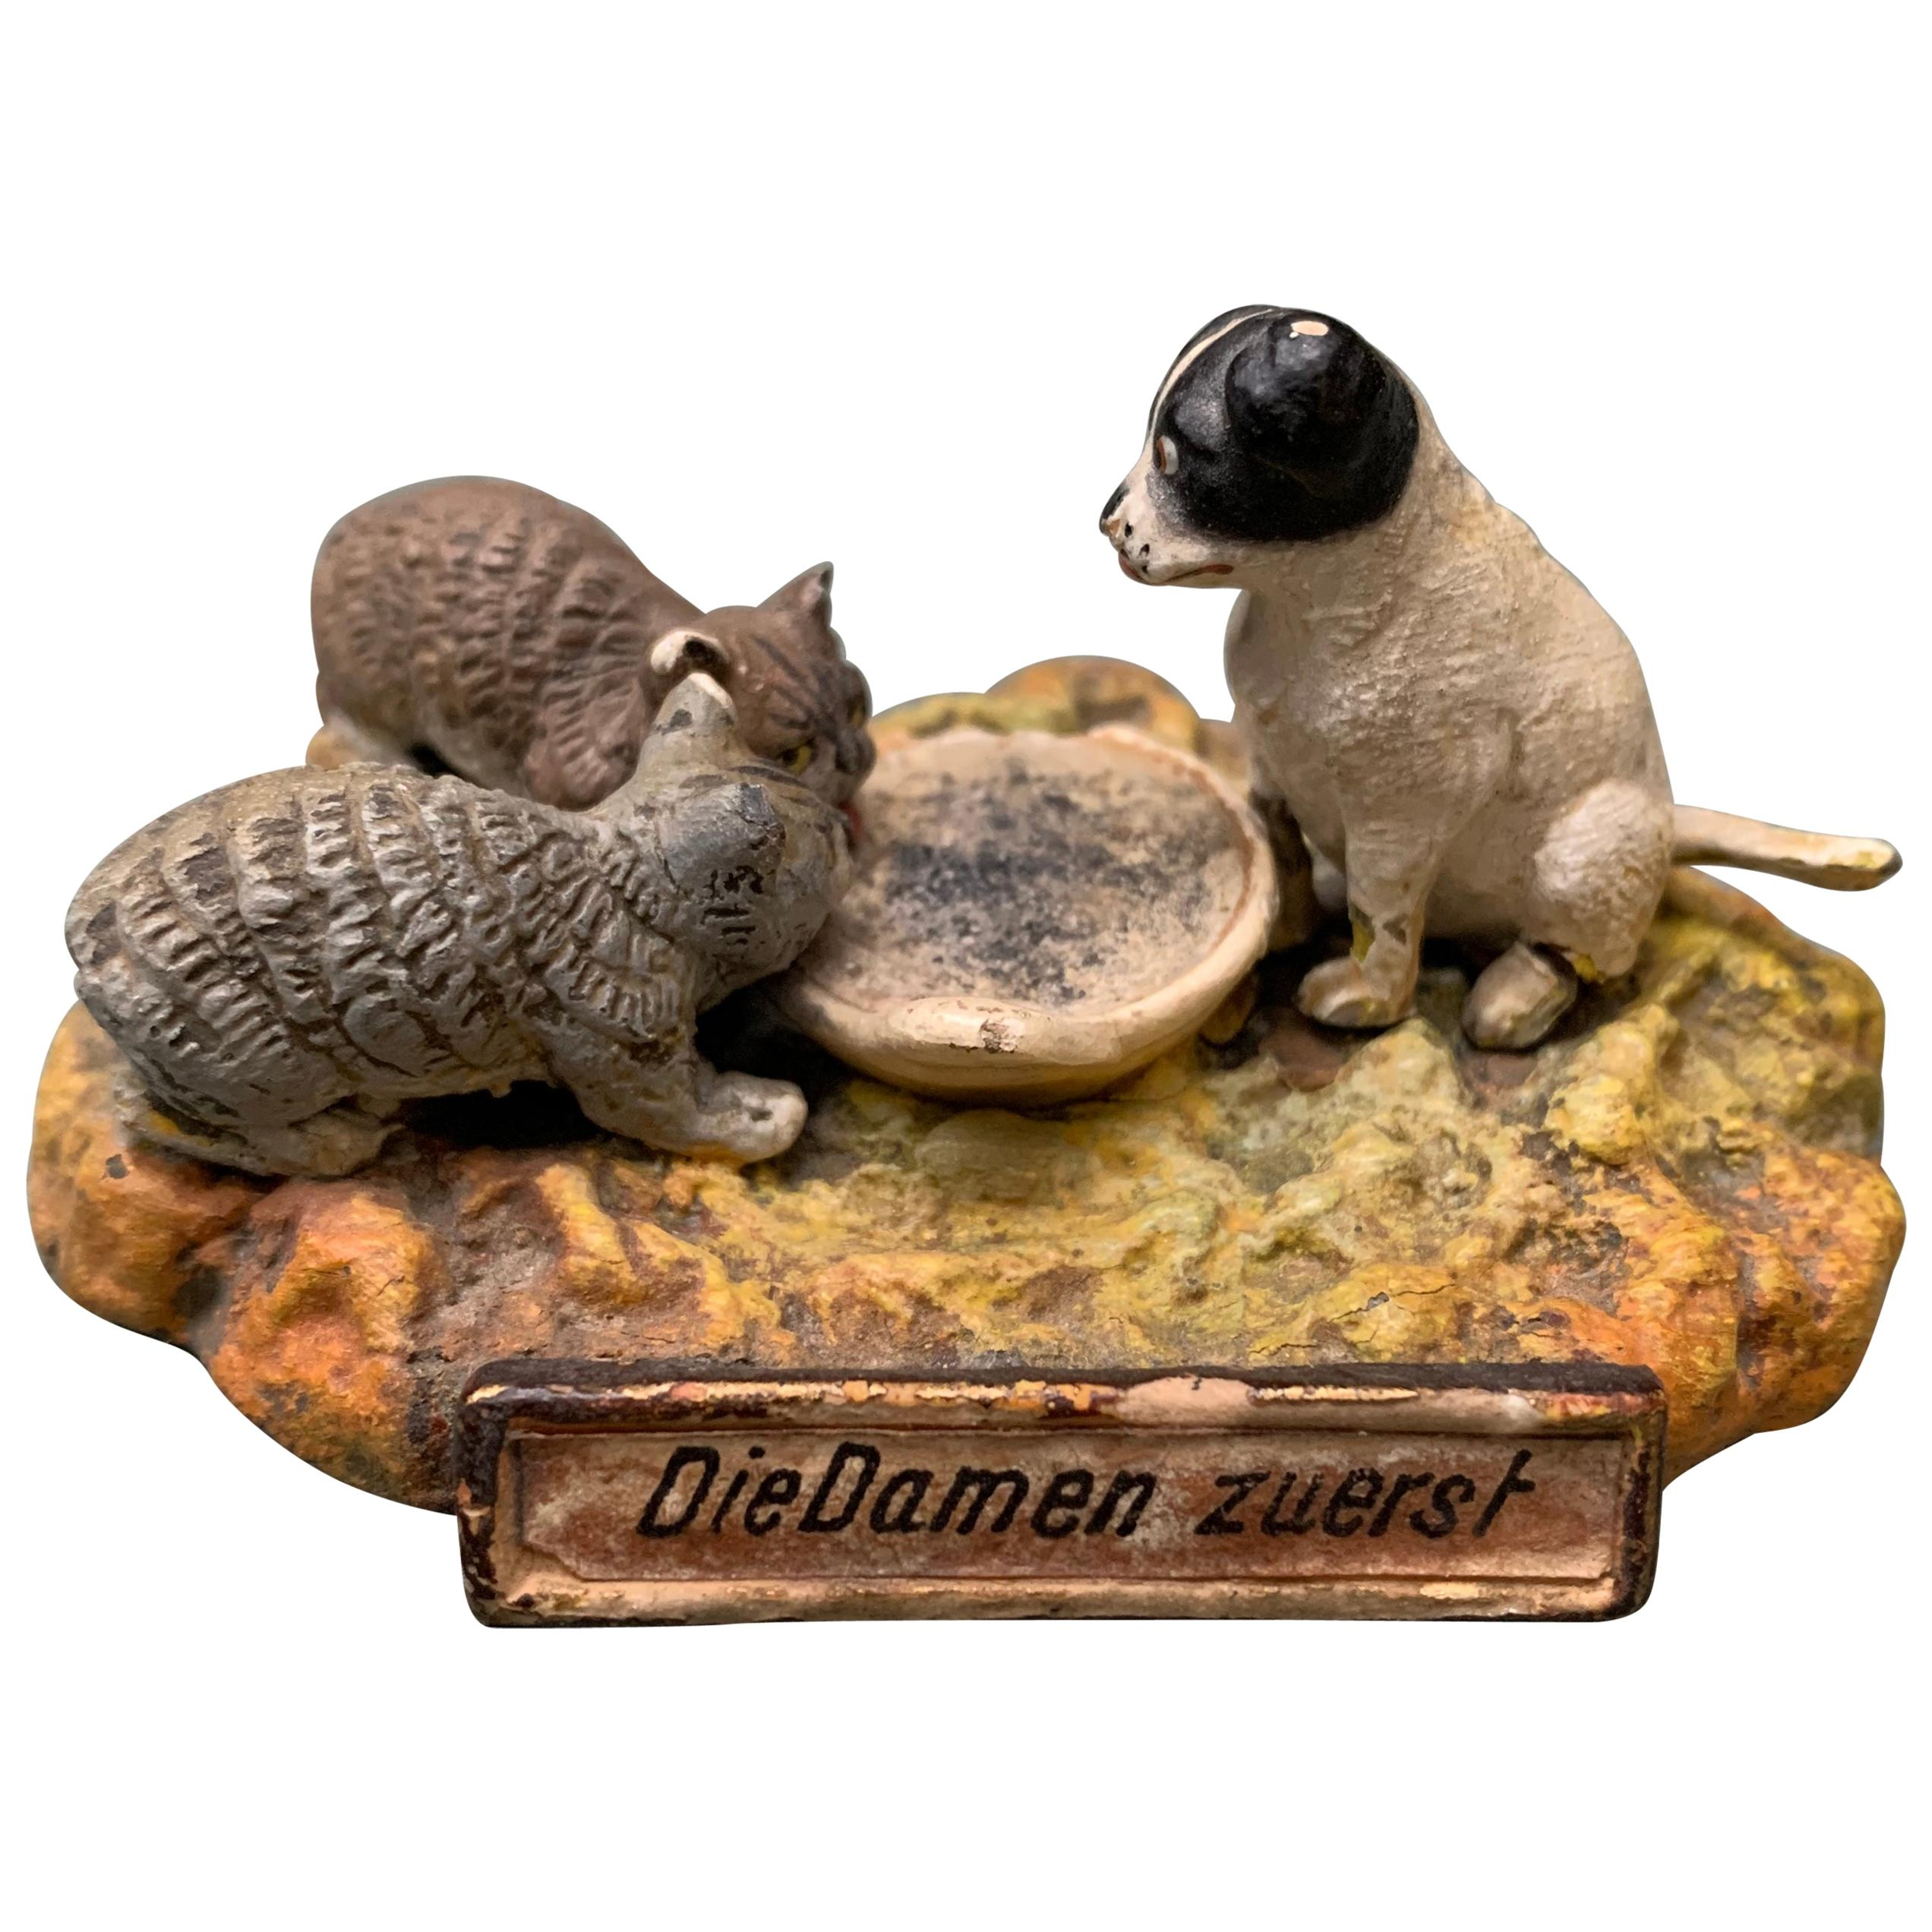 German Ladies First Bronze Sculpture of Cats and Dog